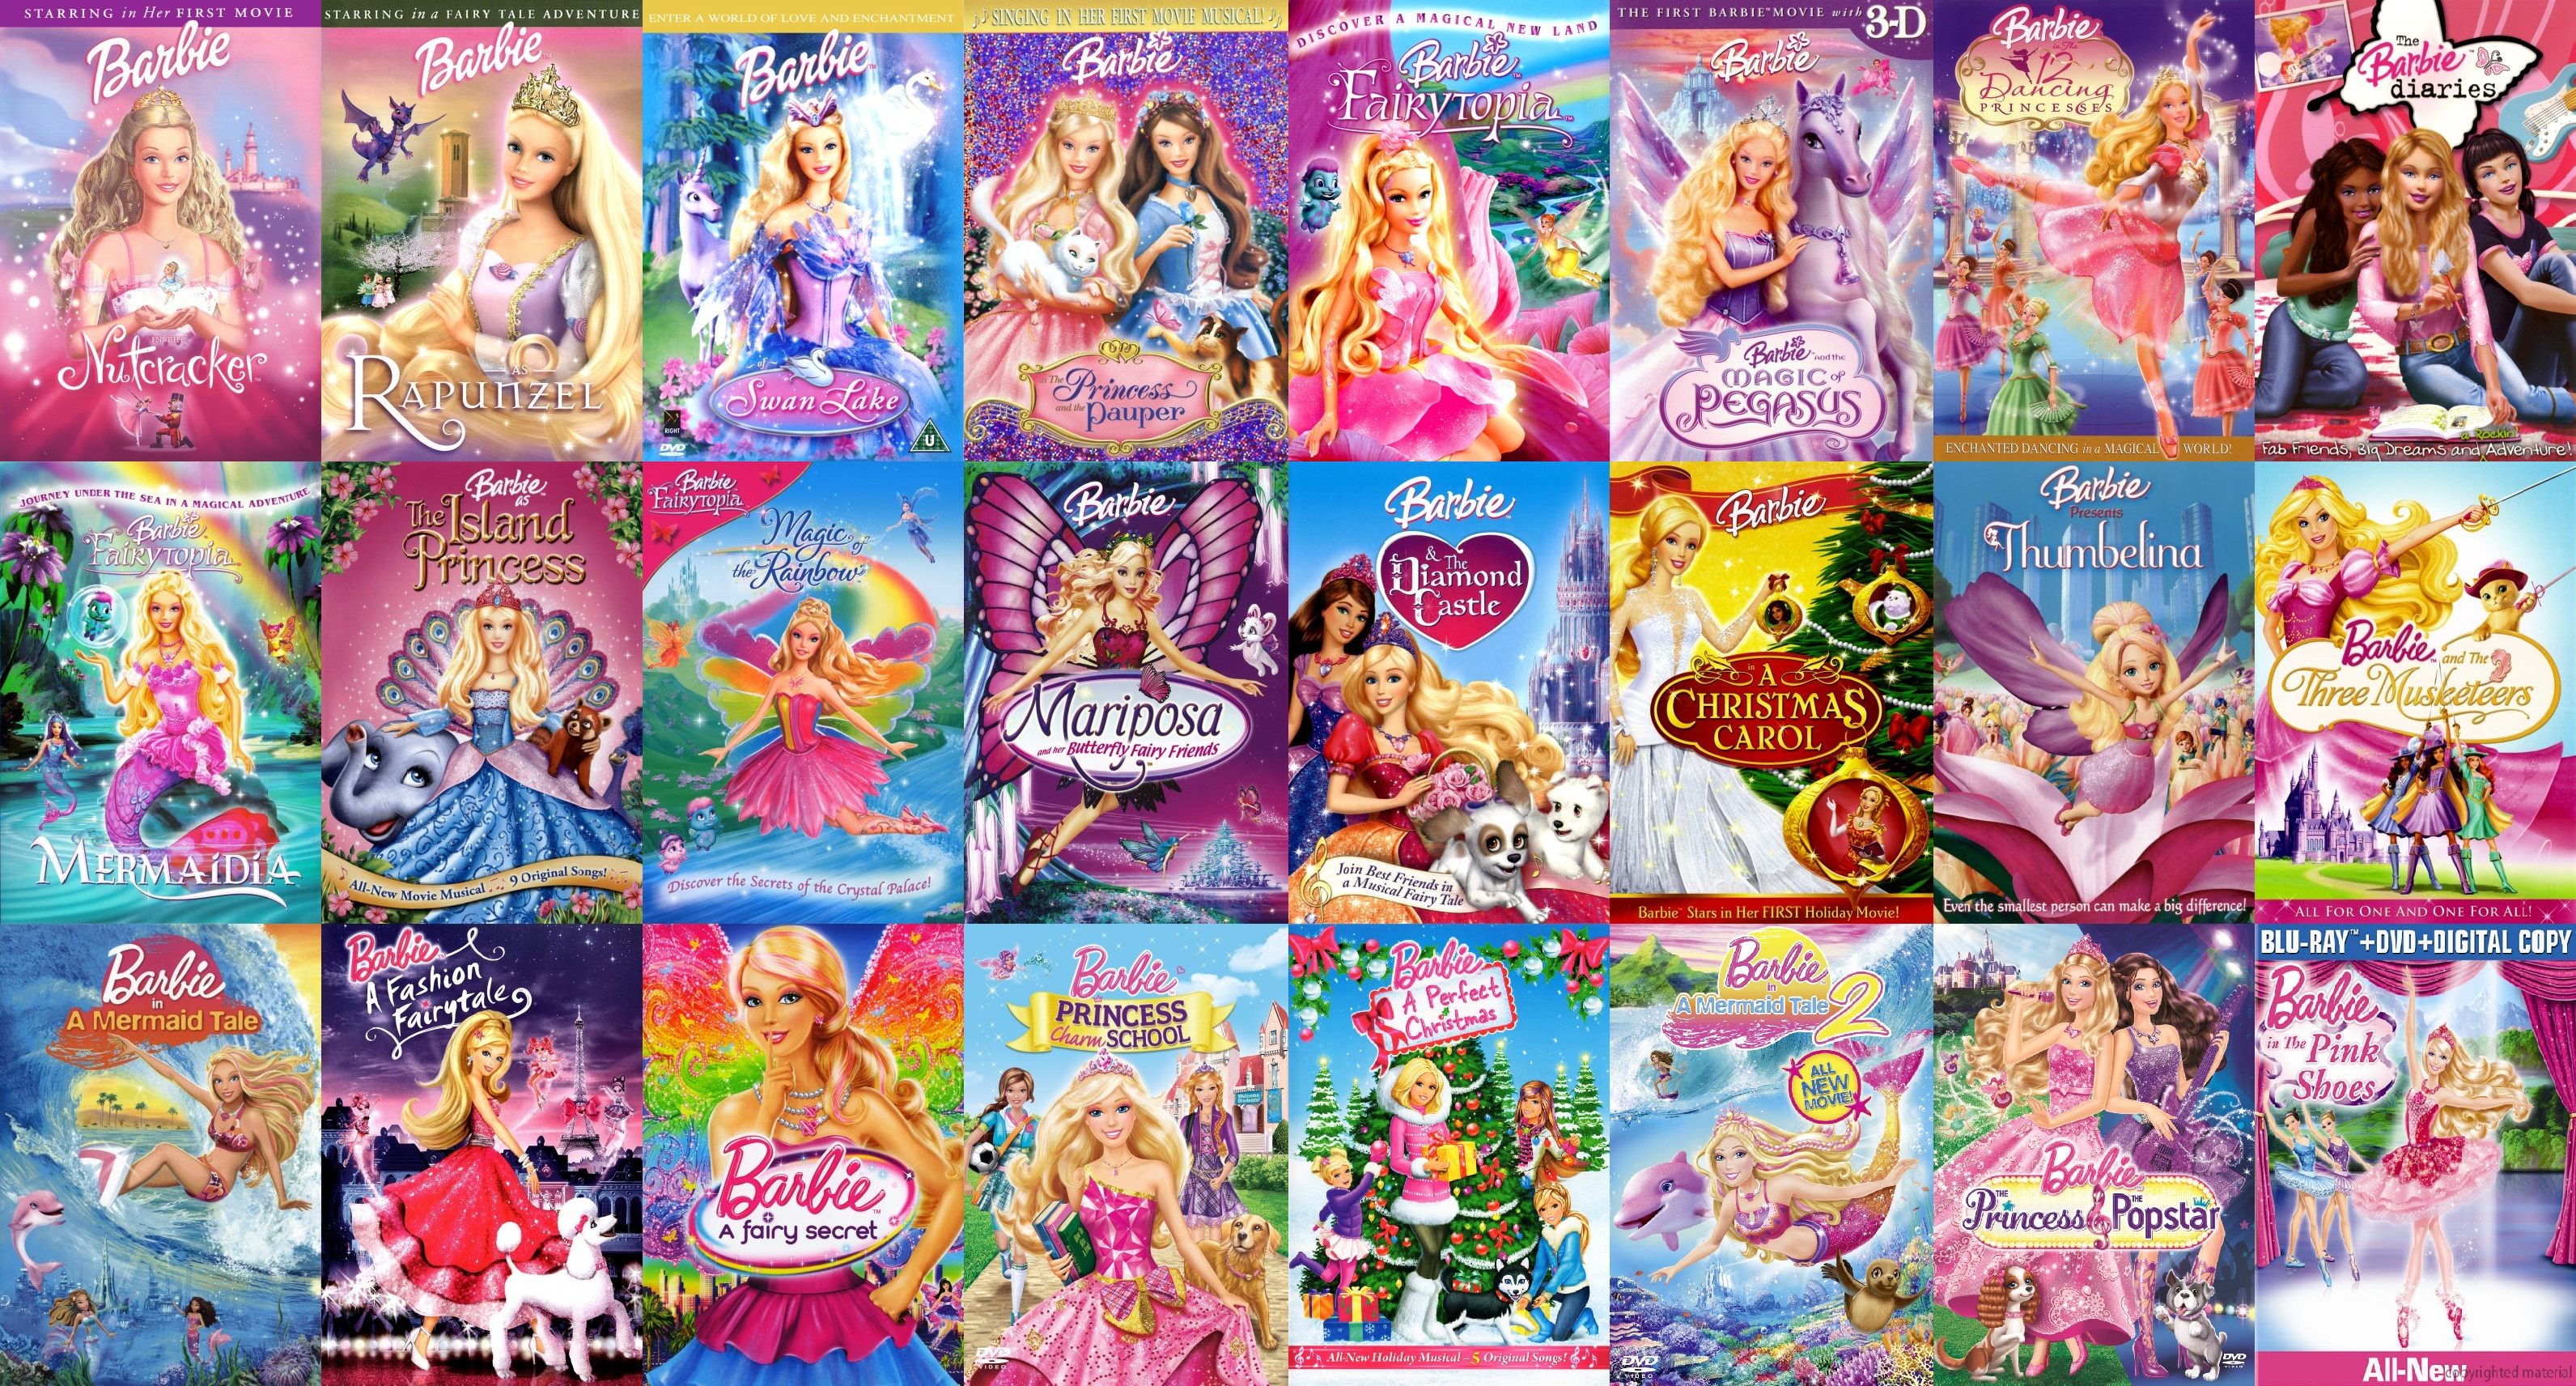 All Barbie films